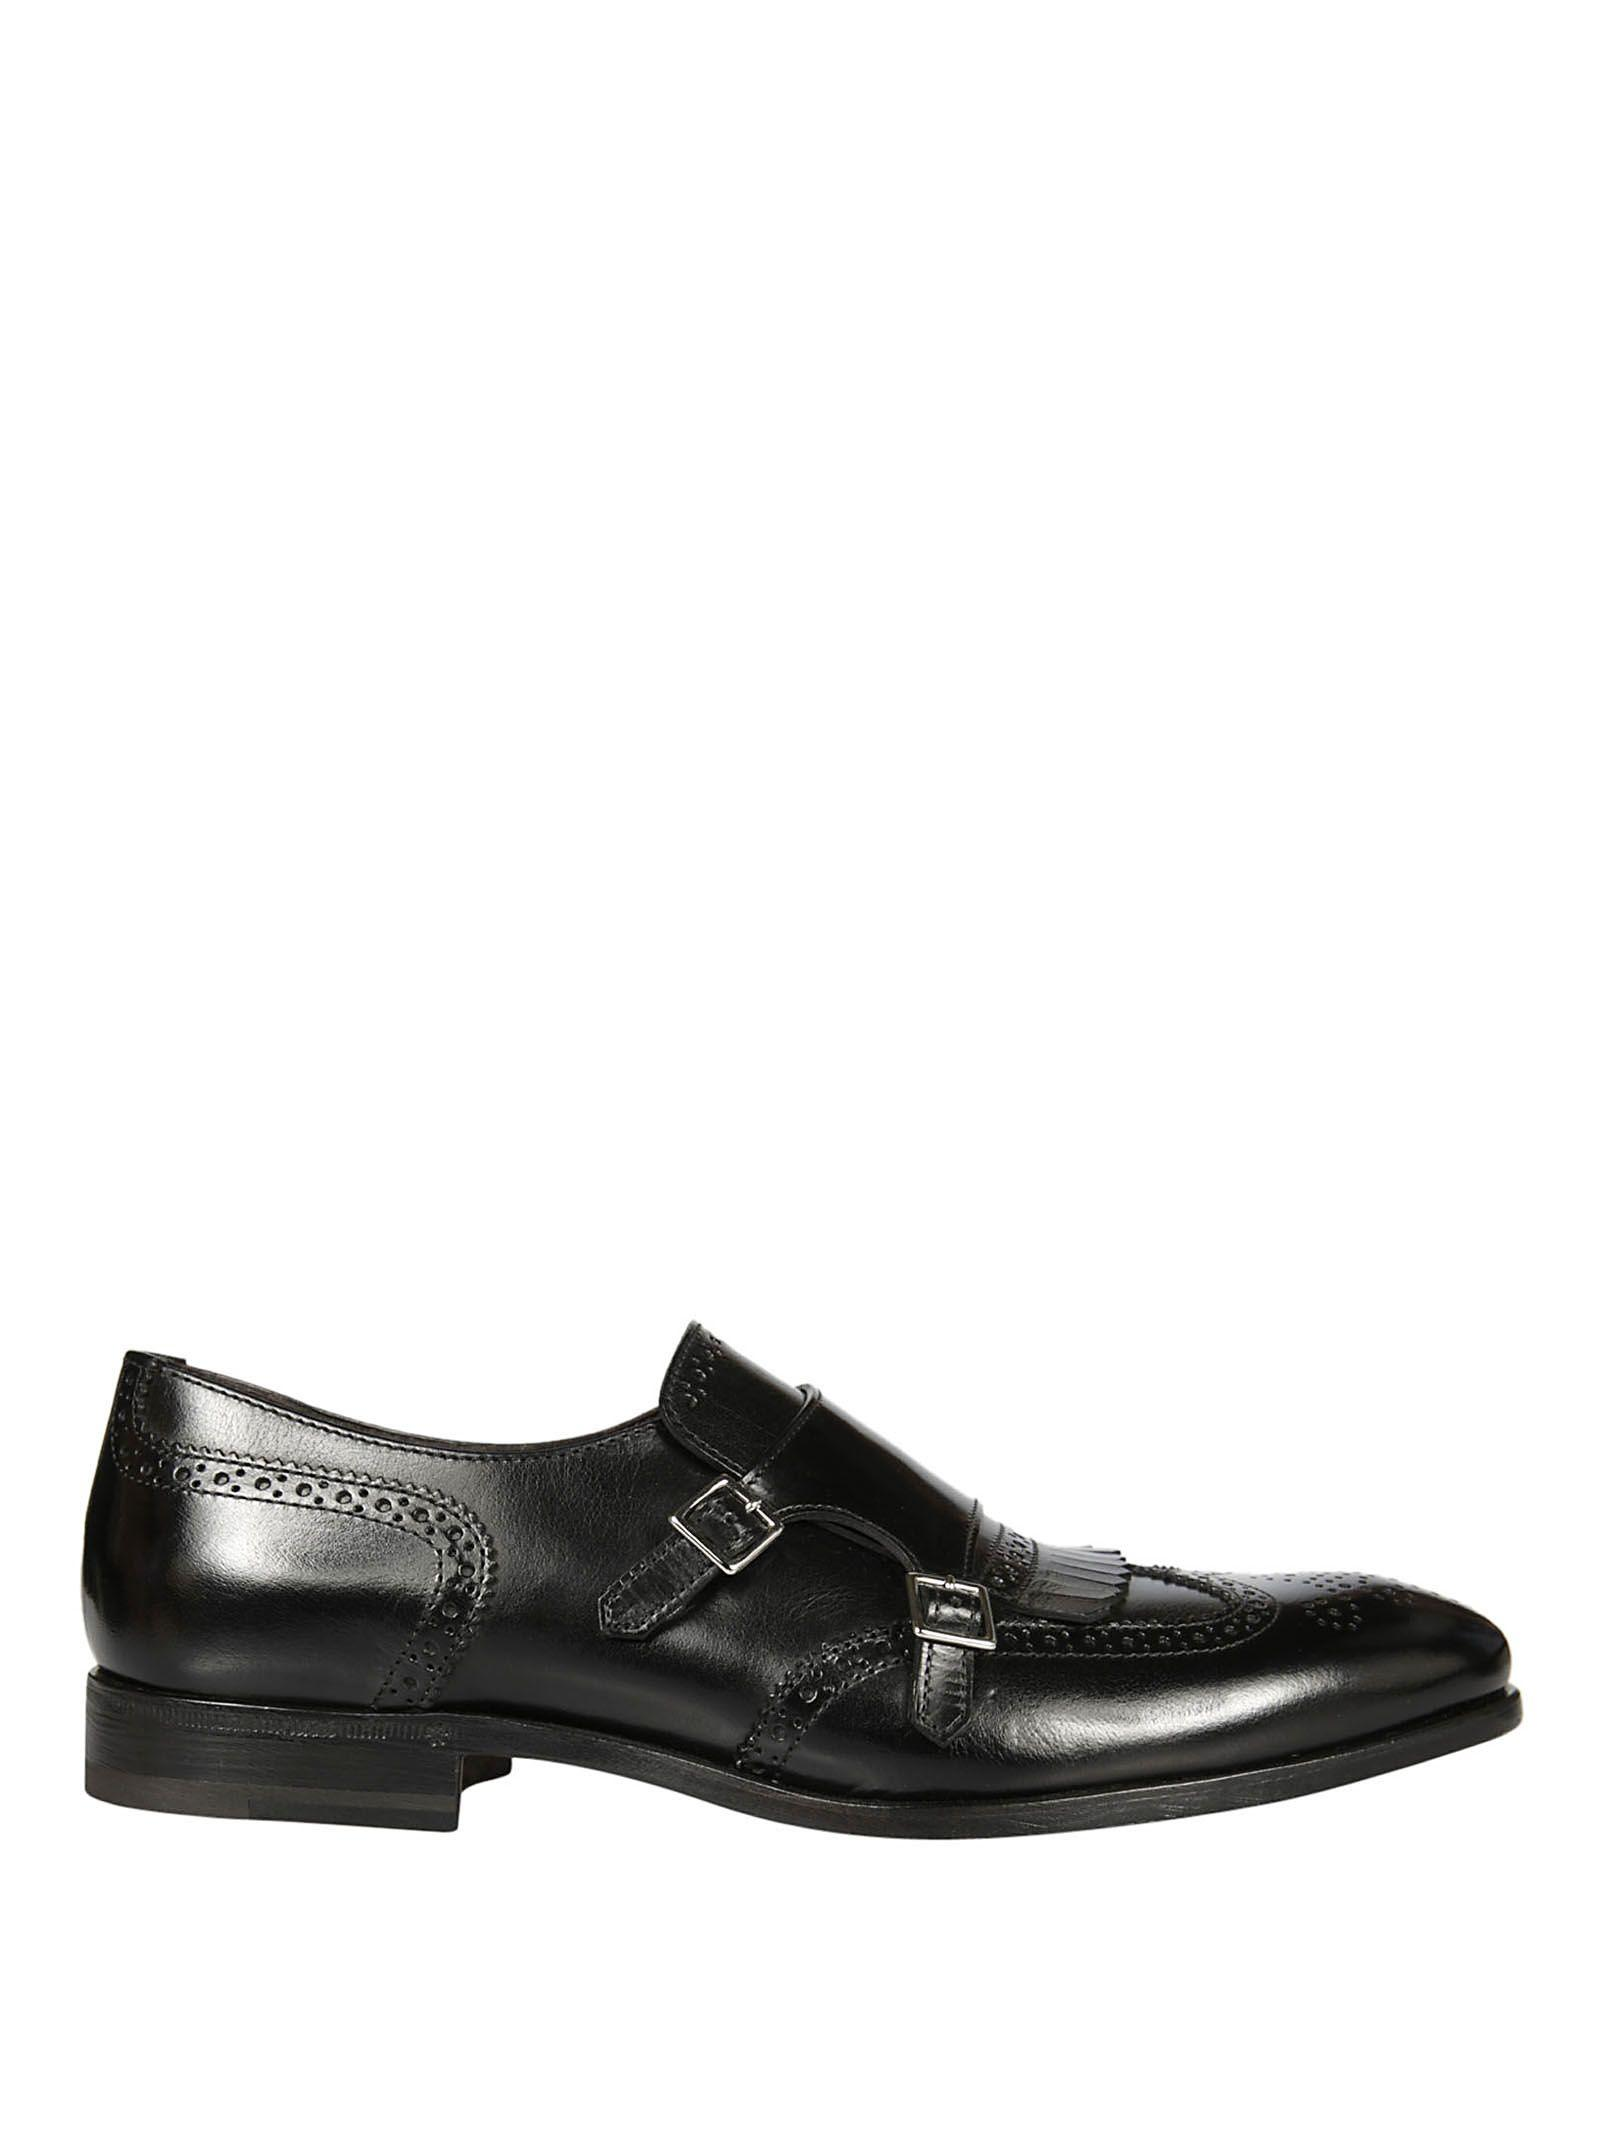 Henderson Monk-fringed Loafers In Black